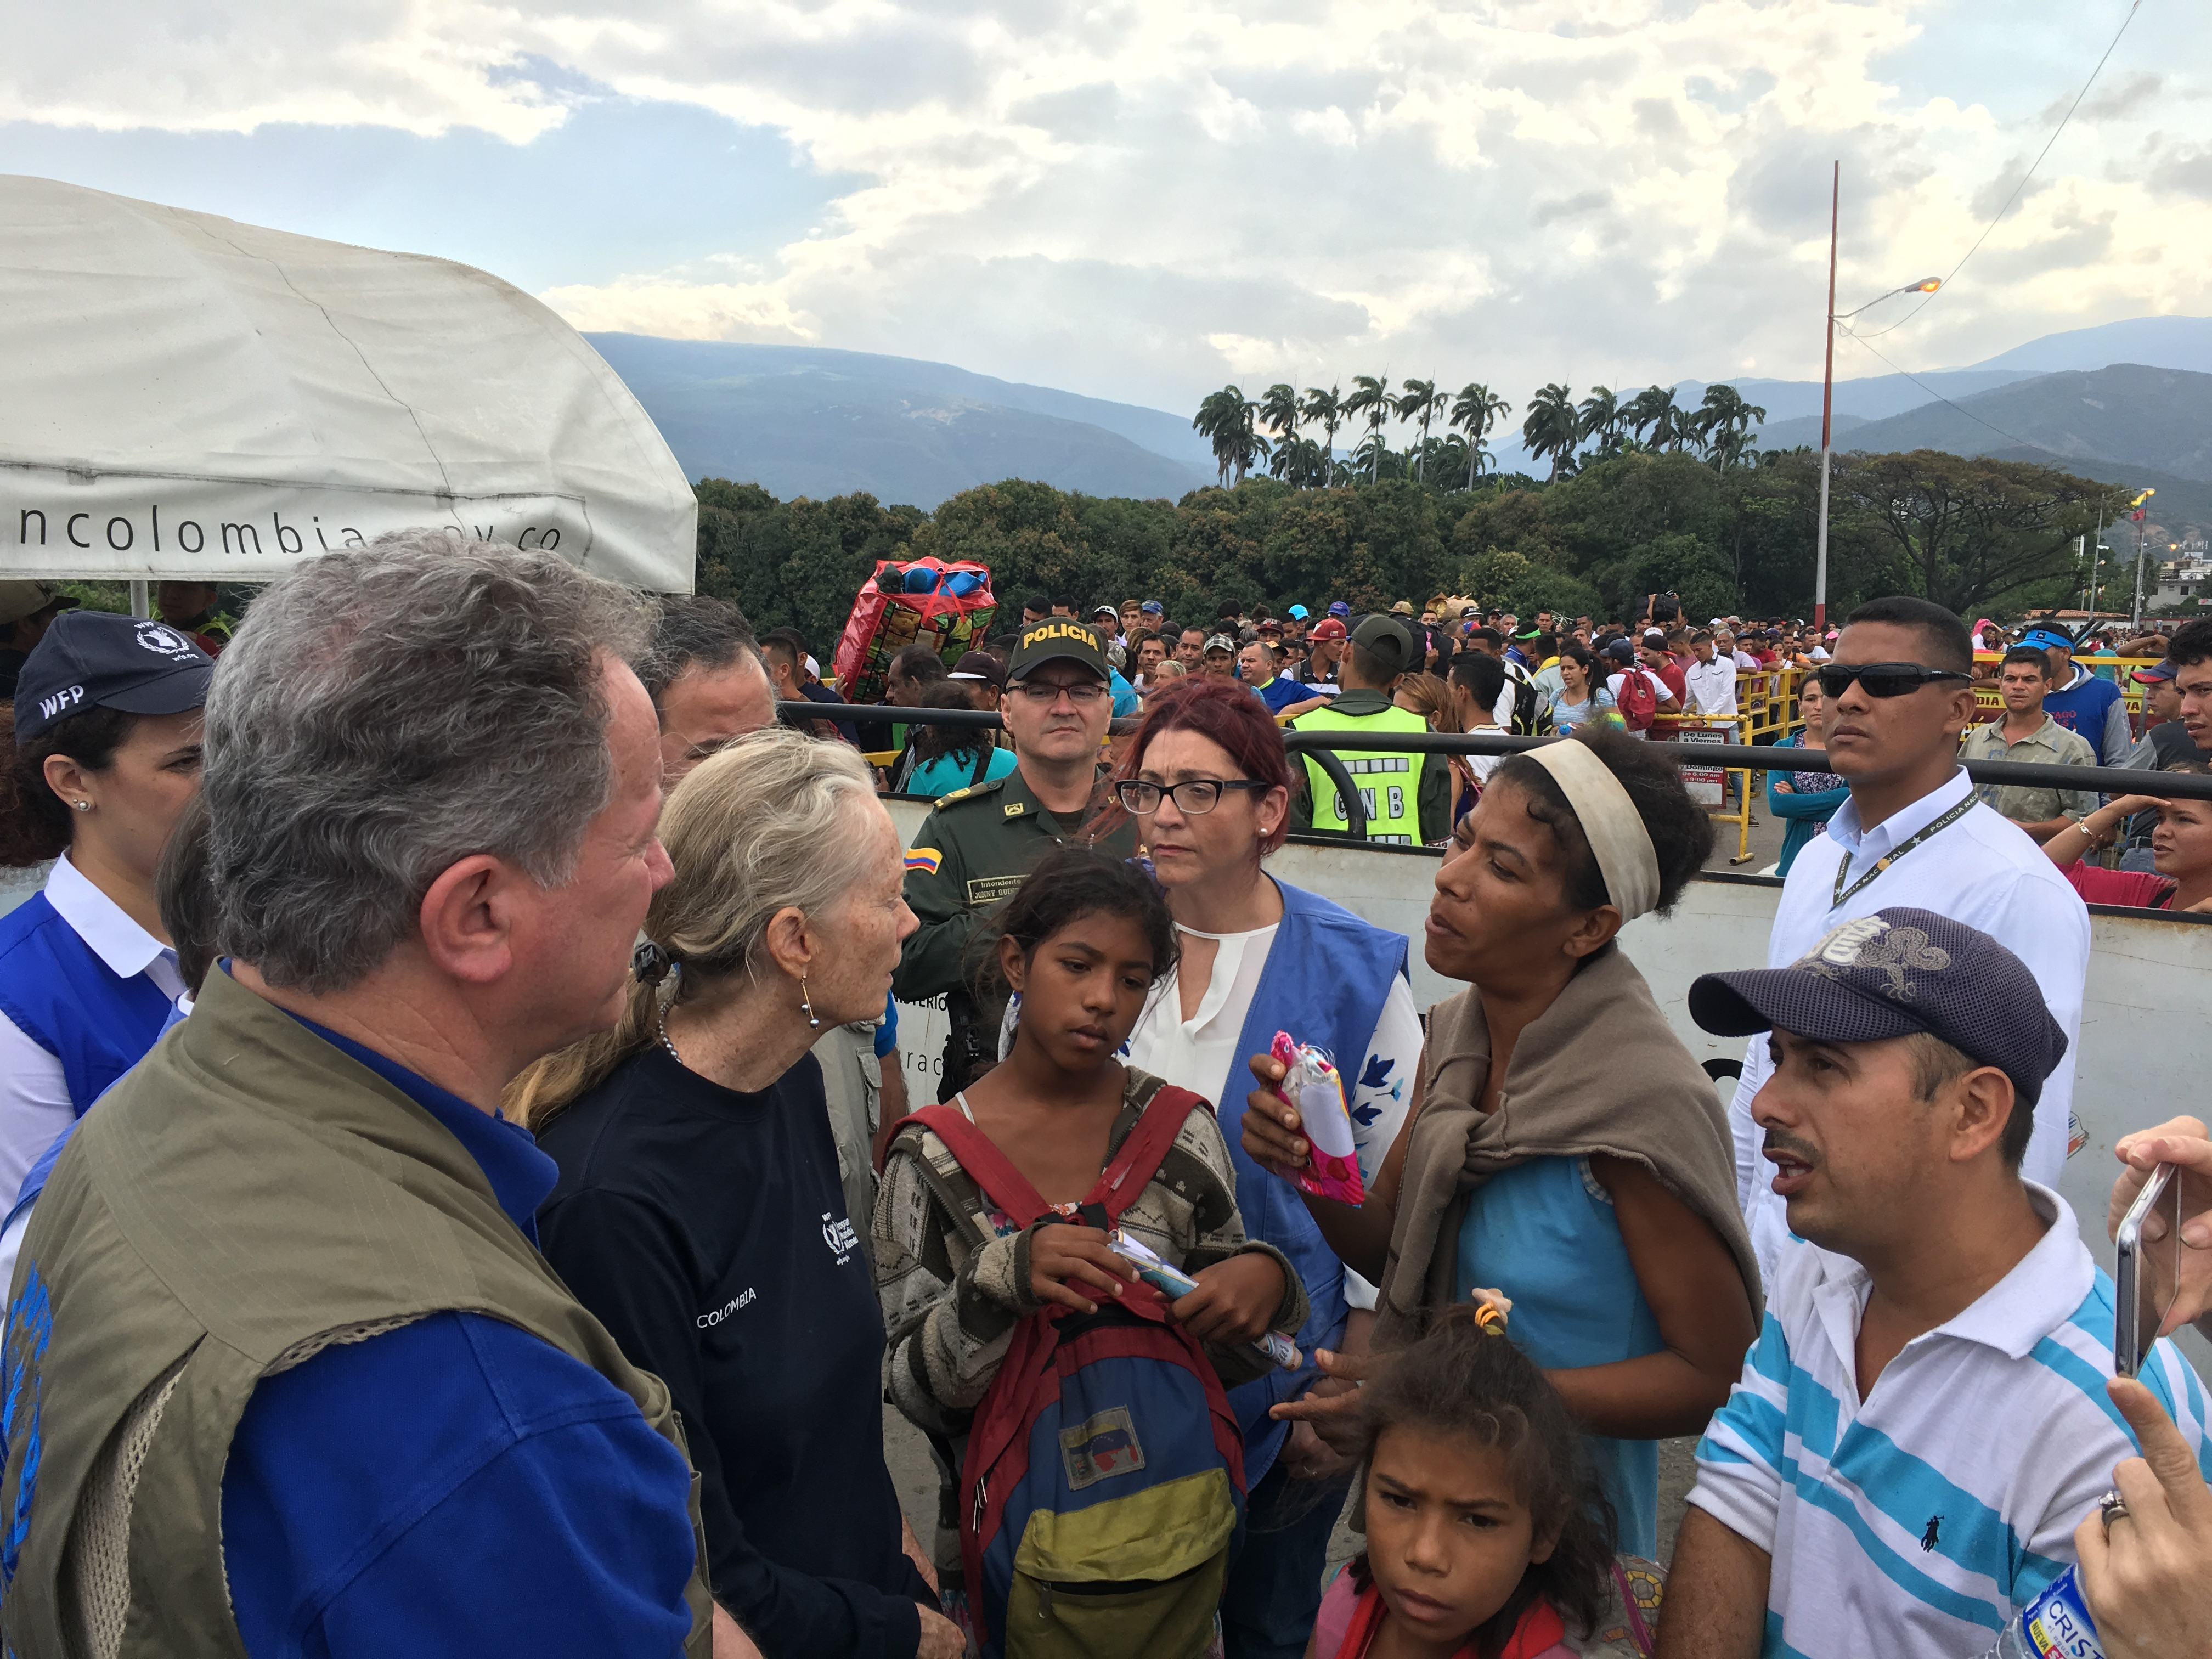 World Food Programme In Colombia Needs Us 46 Million To Urgently Help 350 000 Migrants From Venezuela World Food Programme